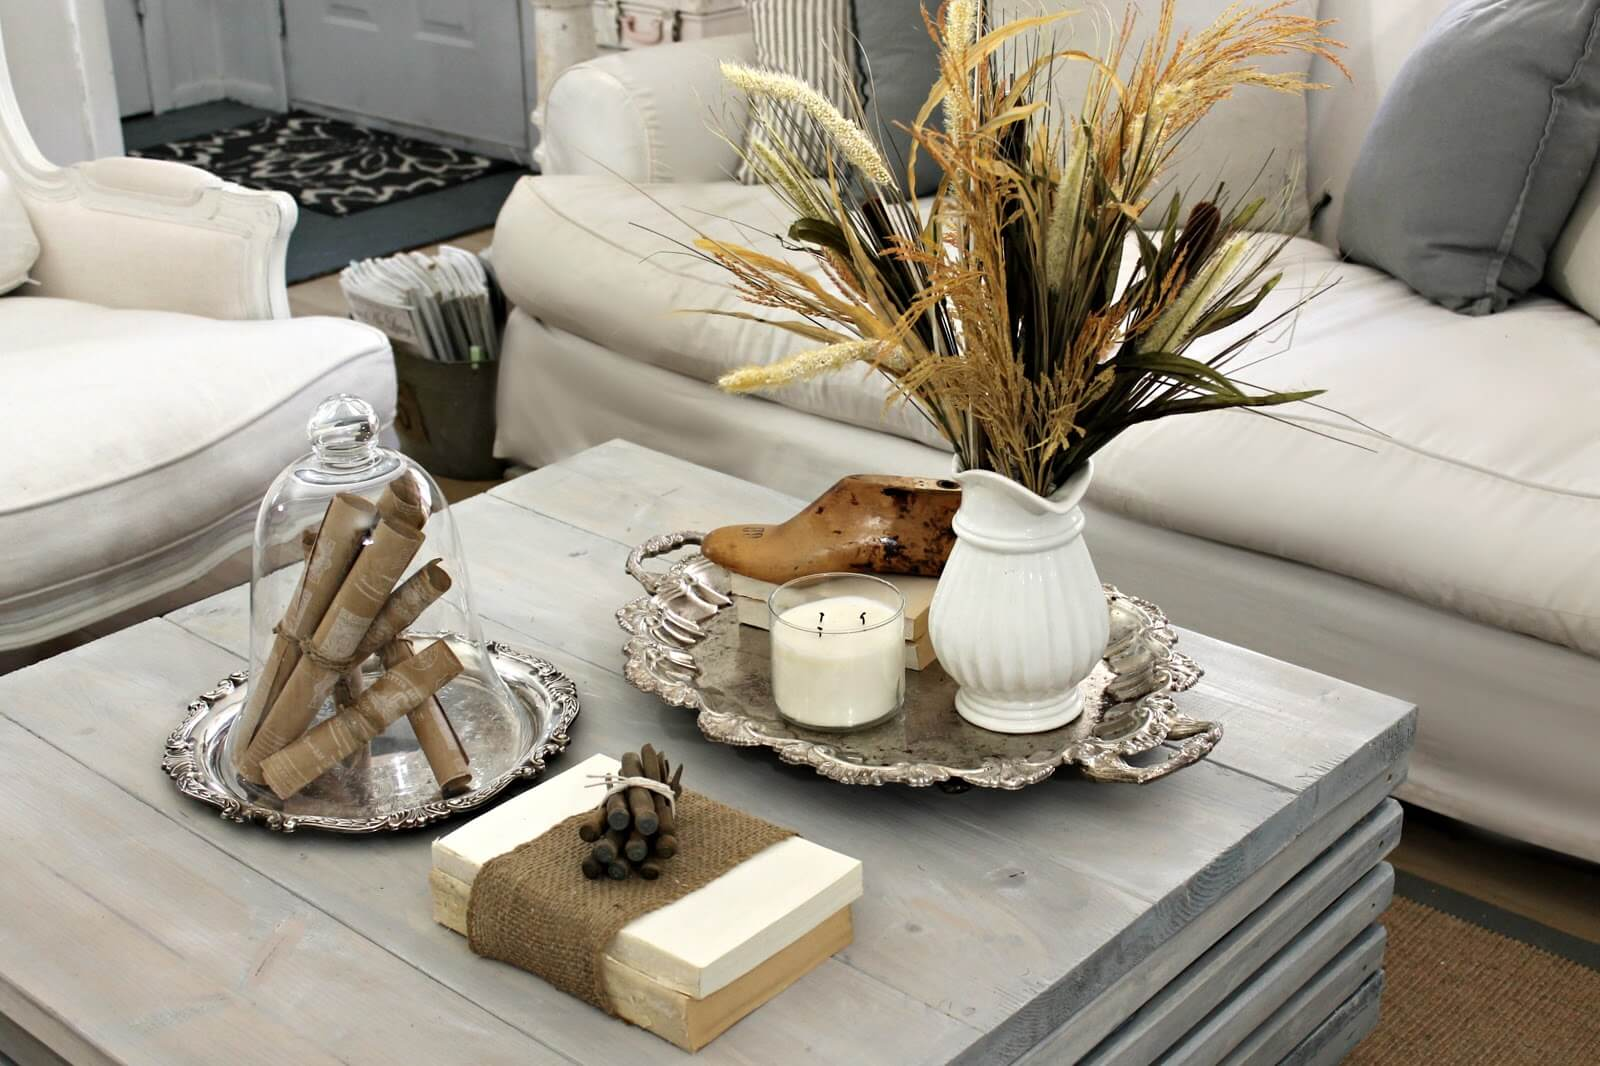 20. Earth Toned Brown And White Natural Element Display With Silver Accents